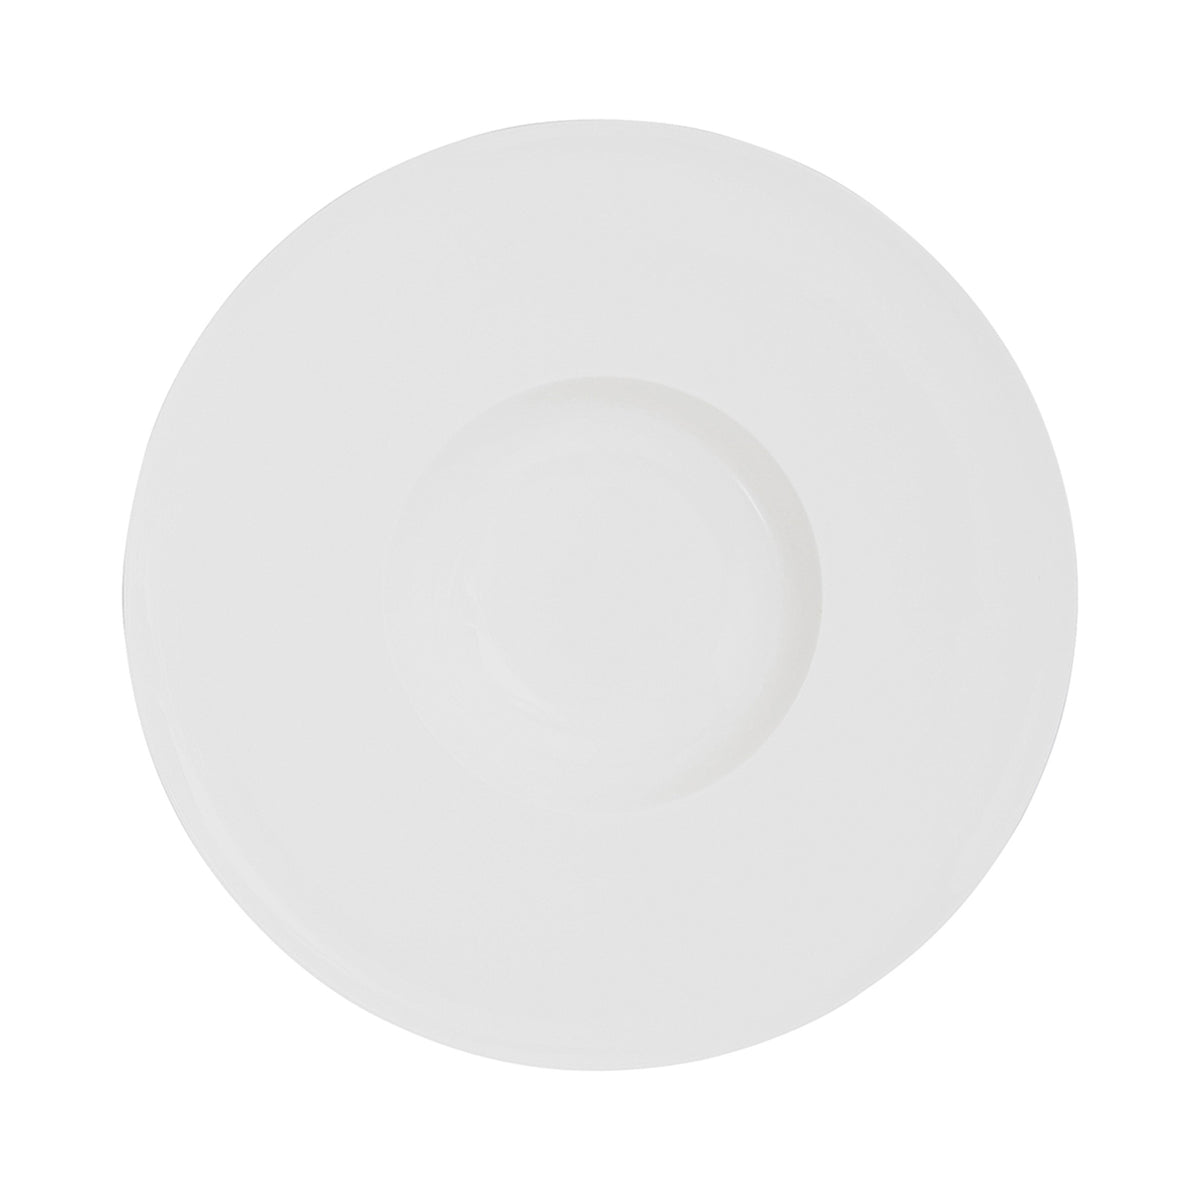 A Table Gourmet Plate